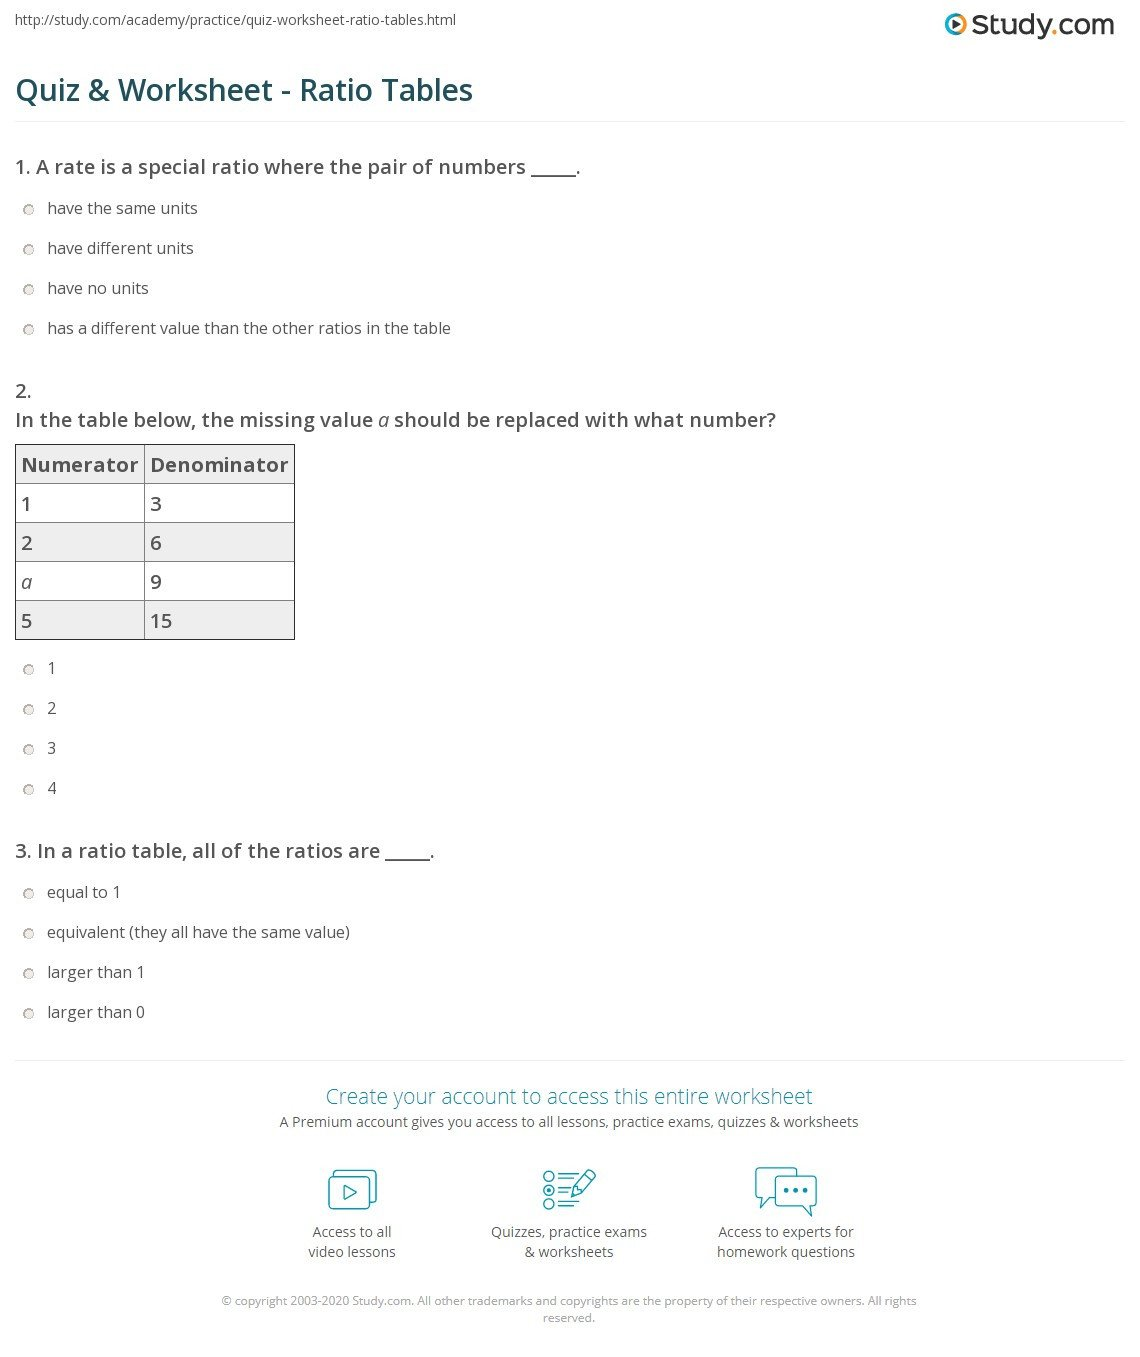 quiz worksheet ratio tables